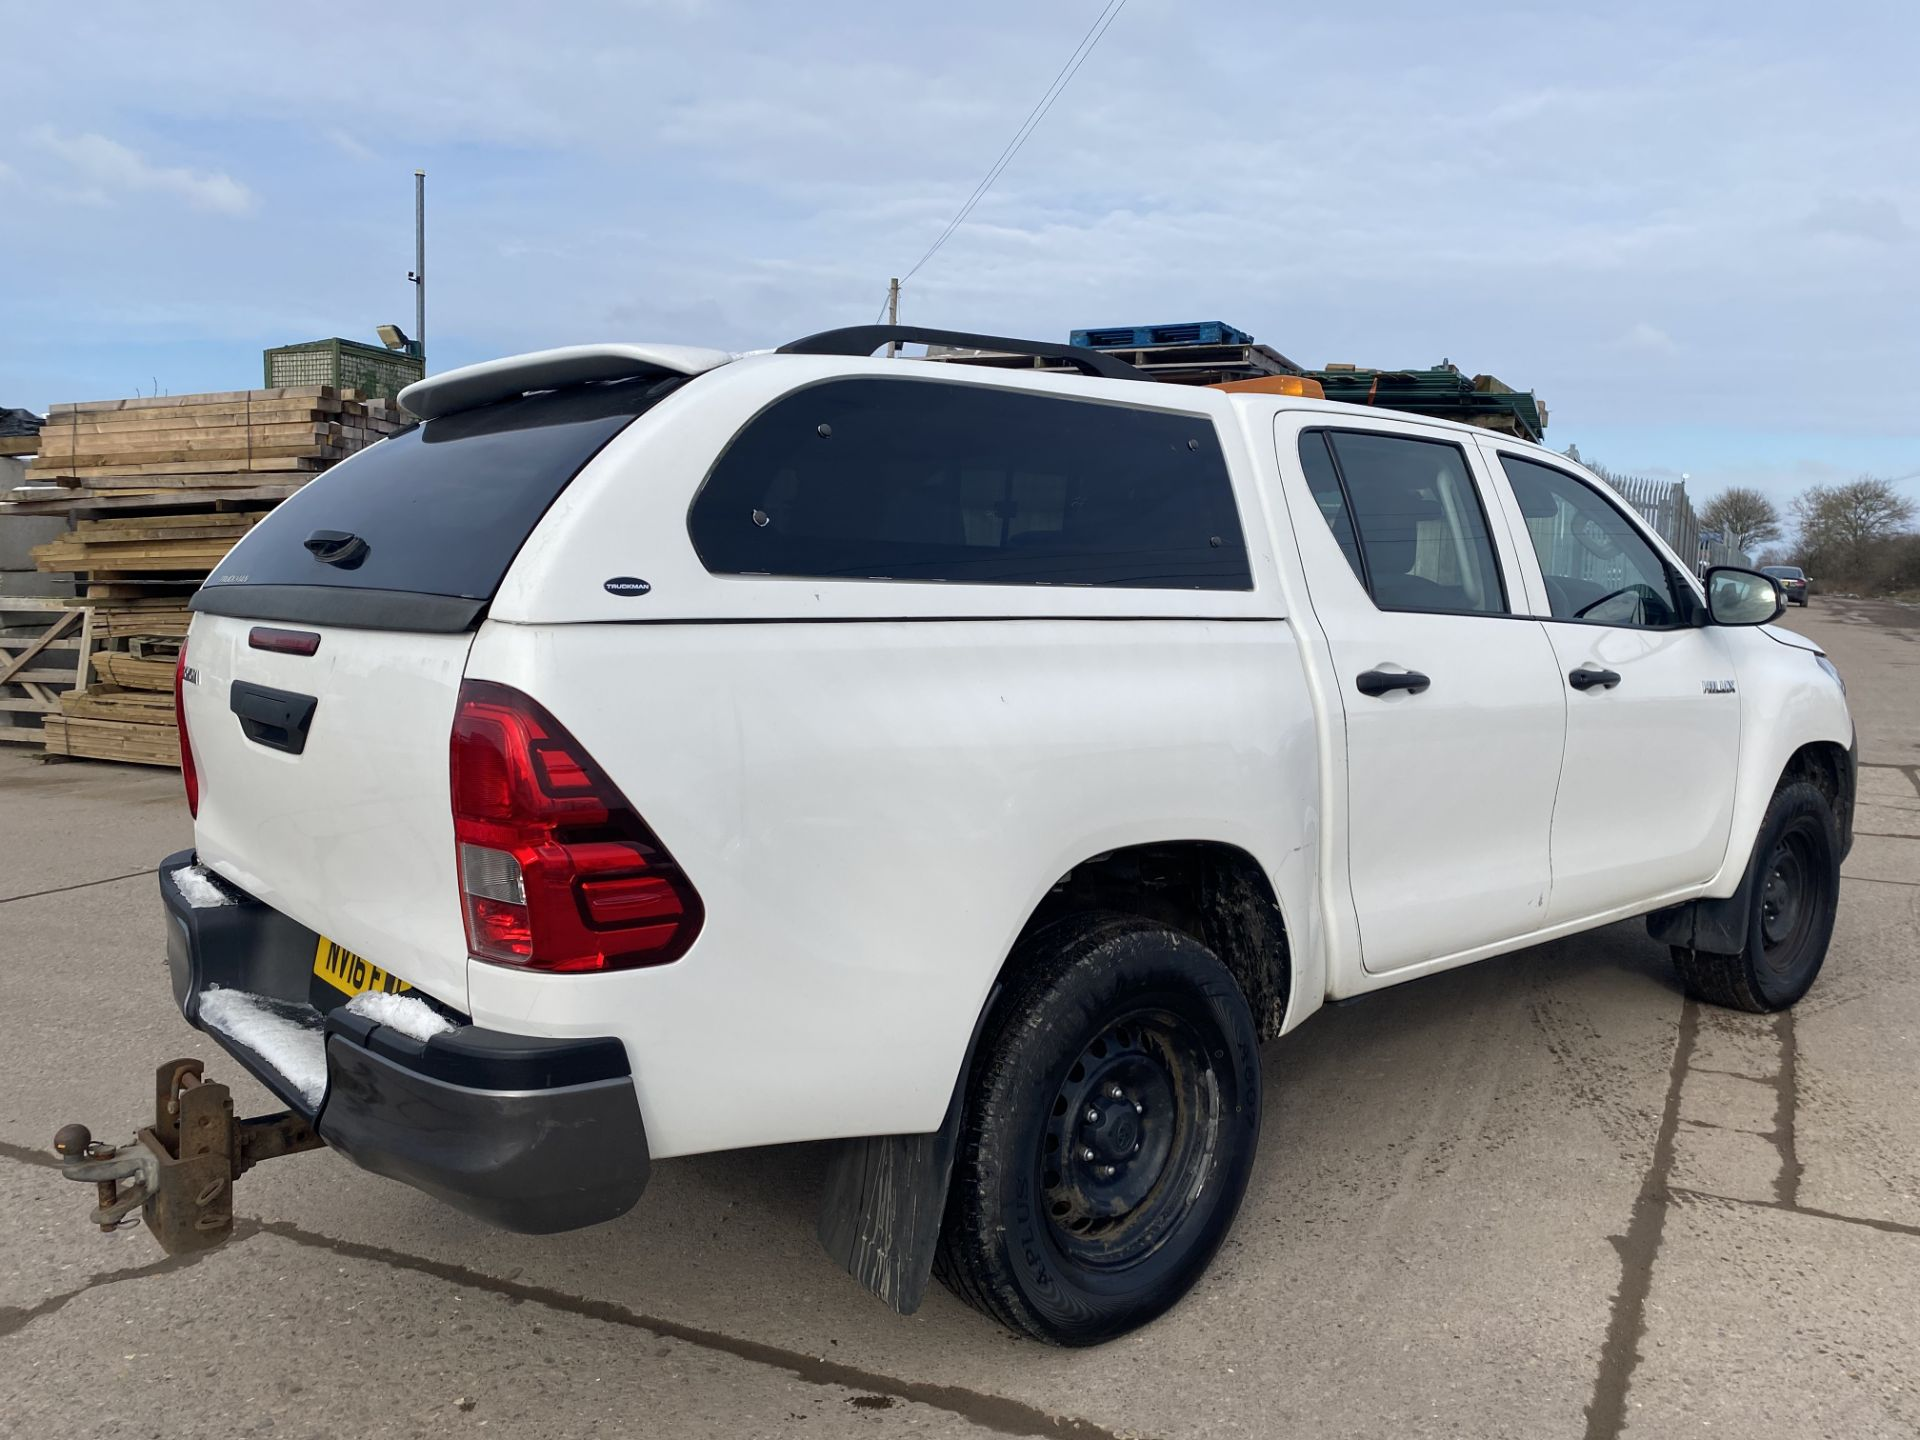 """TOYOTA HILUX """"ACTIVE"""" DOUBLE CAB PICK-UP (2016 - NEW MODEL) 1 OWNER - AIR CON - REAR CANOPY- LOOK - Image 7 of 19"""